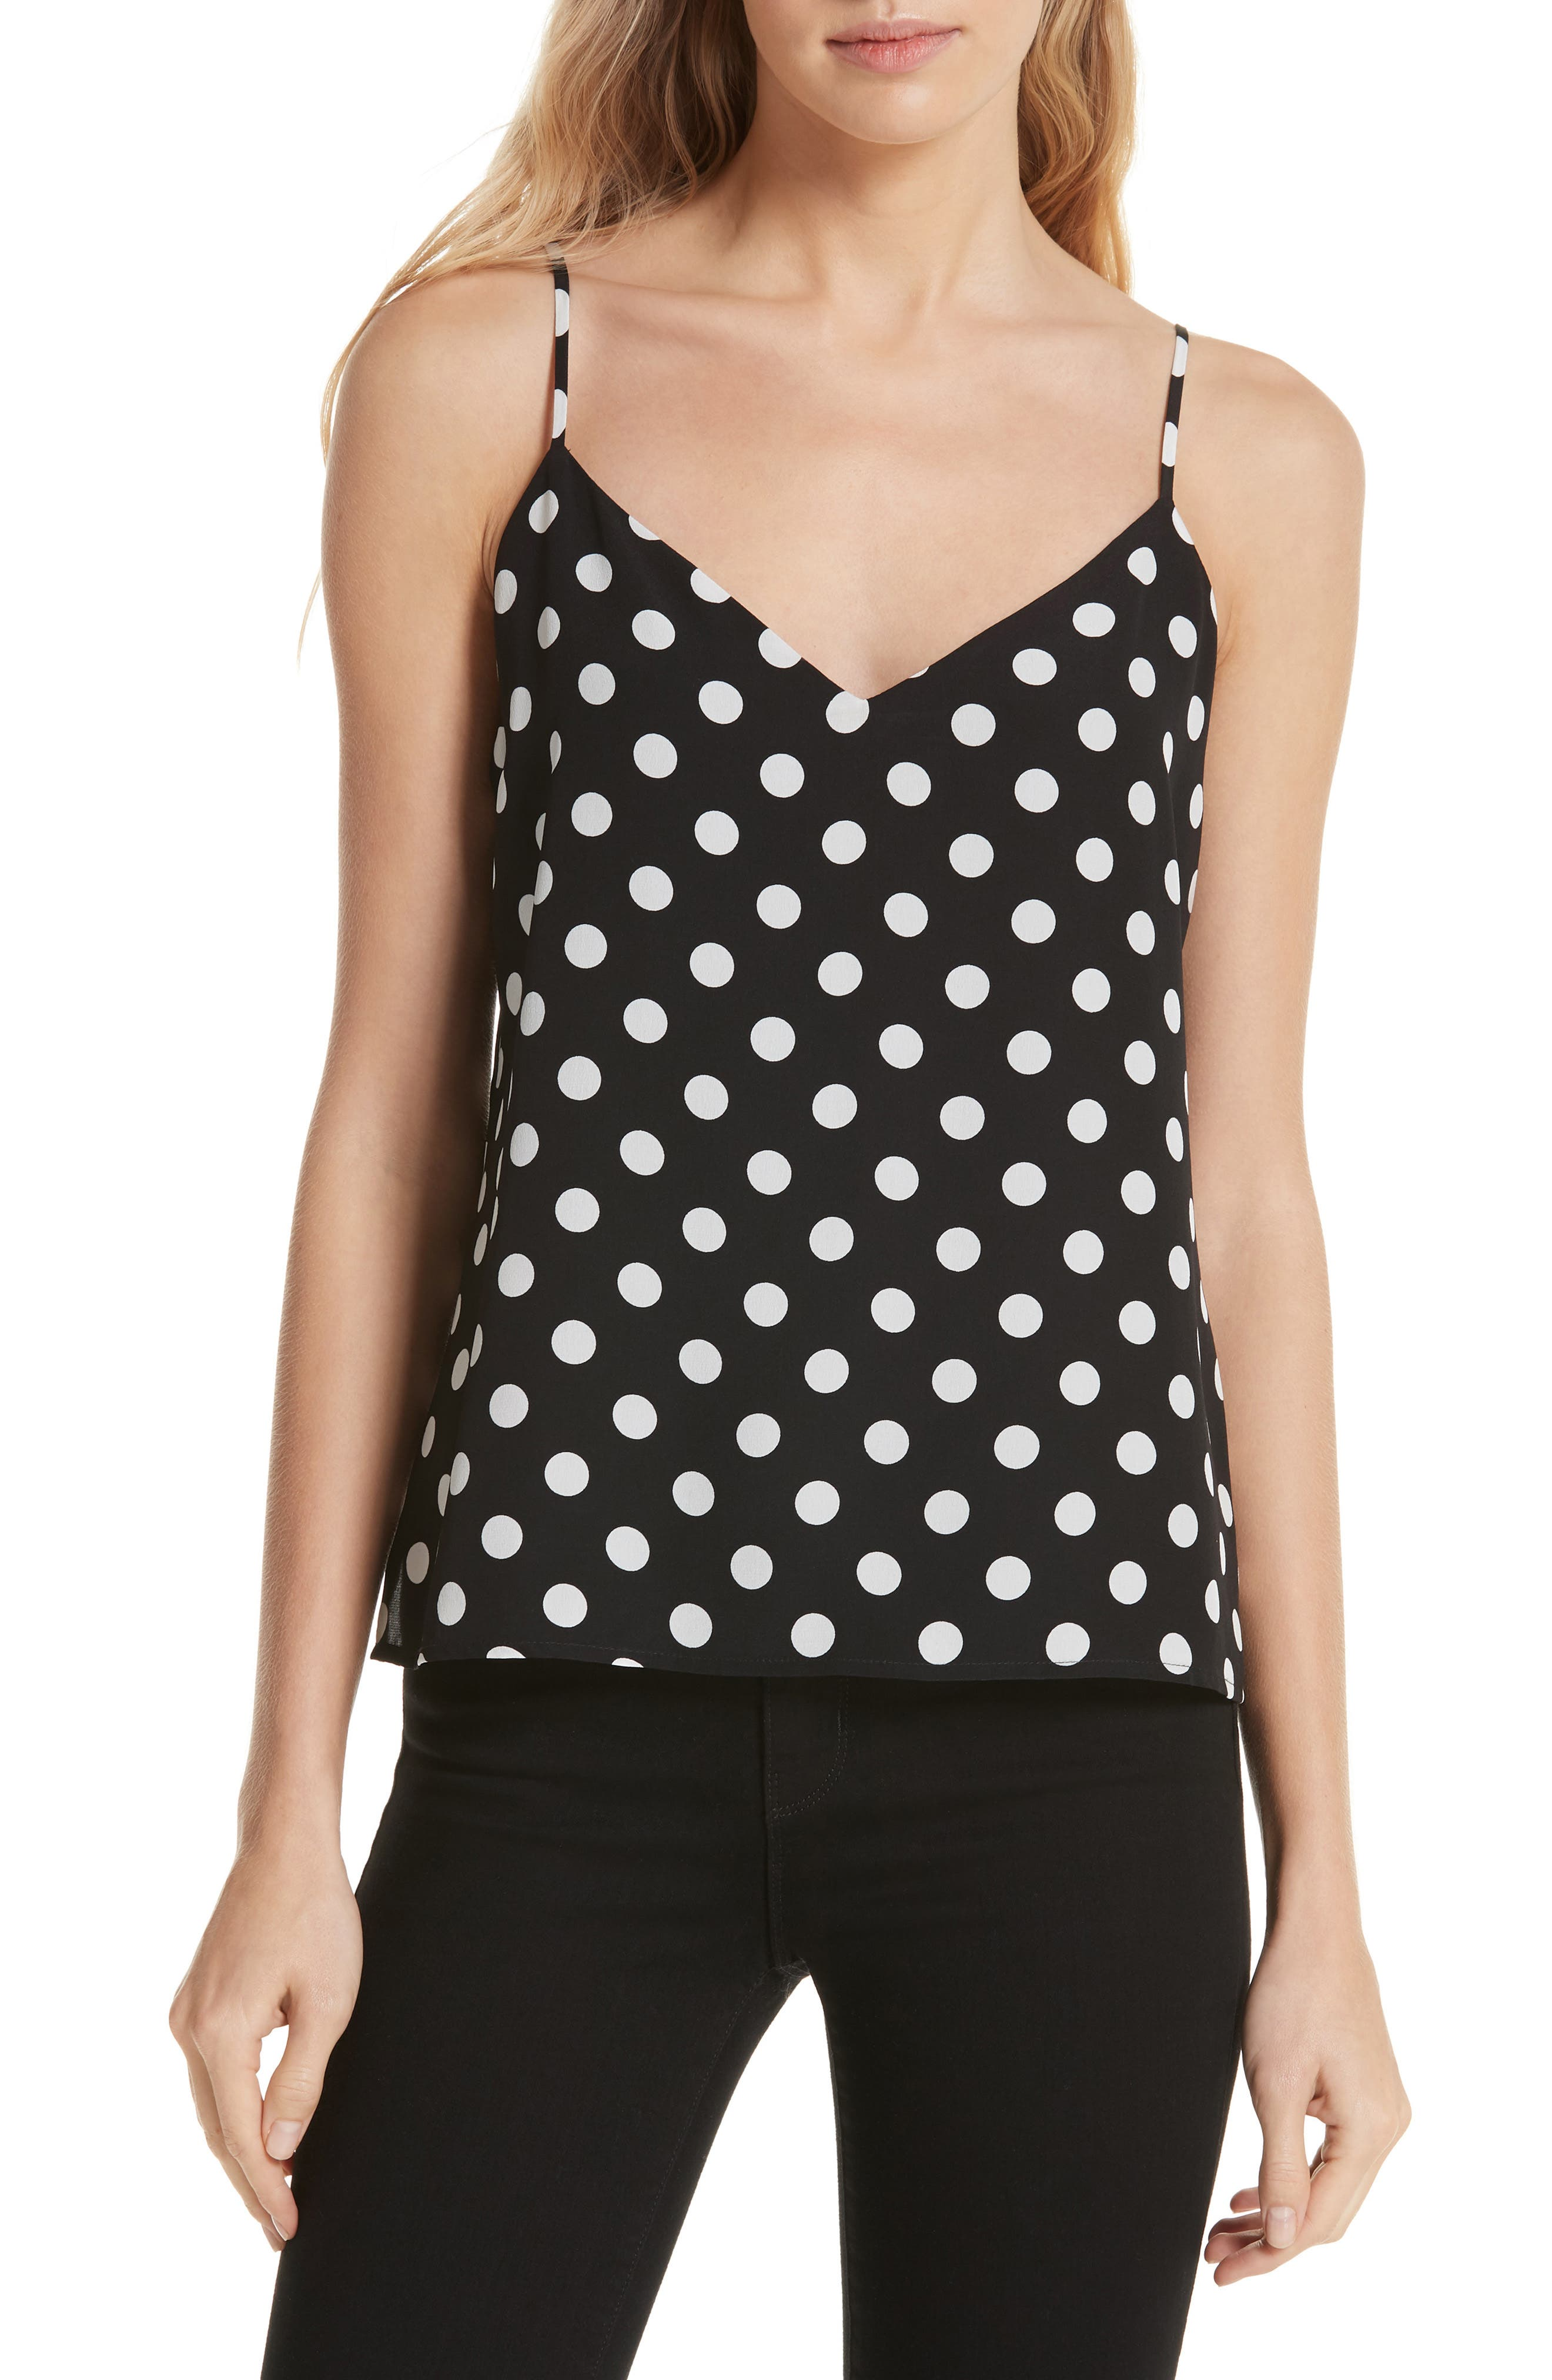 L'AGENCE,                             Jane Polka Dot Camisole,                             Main thumbnail 1, color,                             BLACK/ IVORY